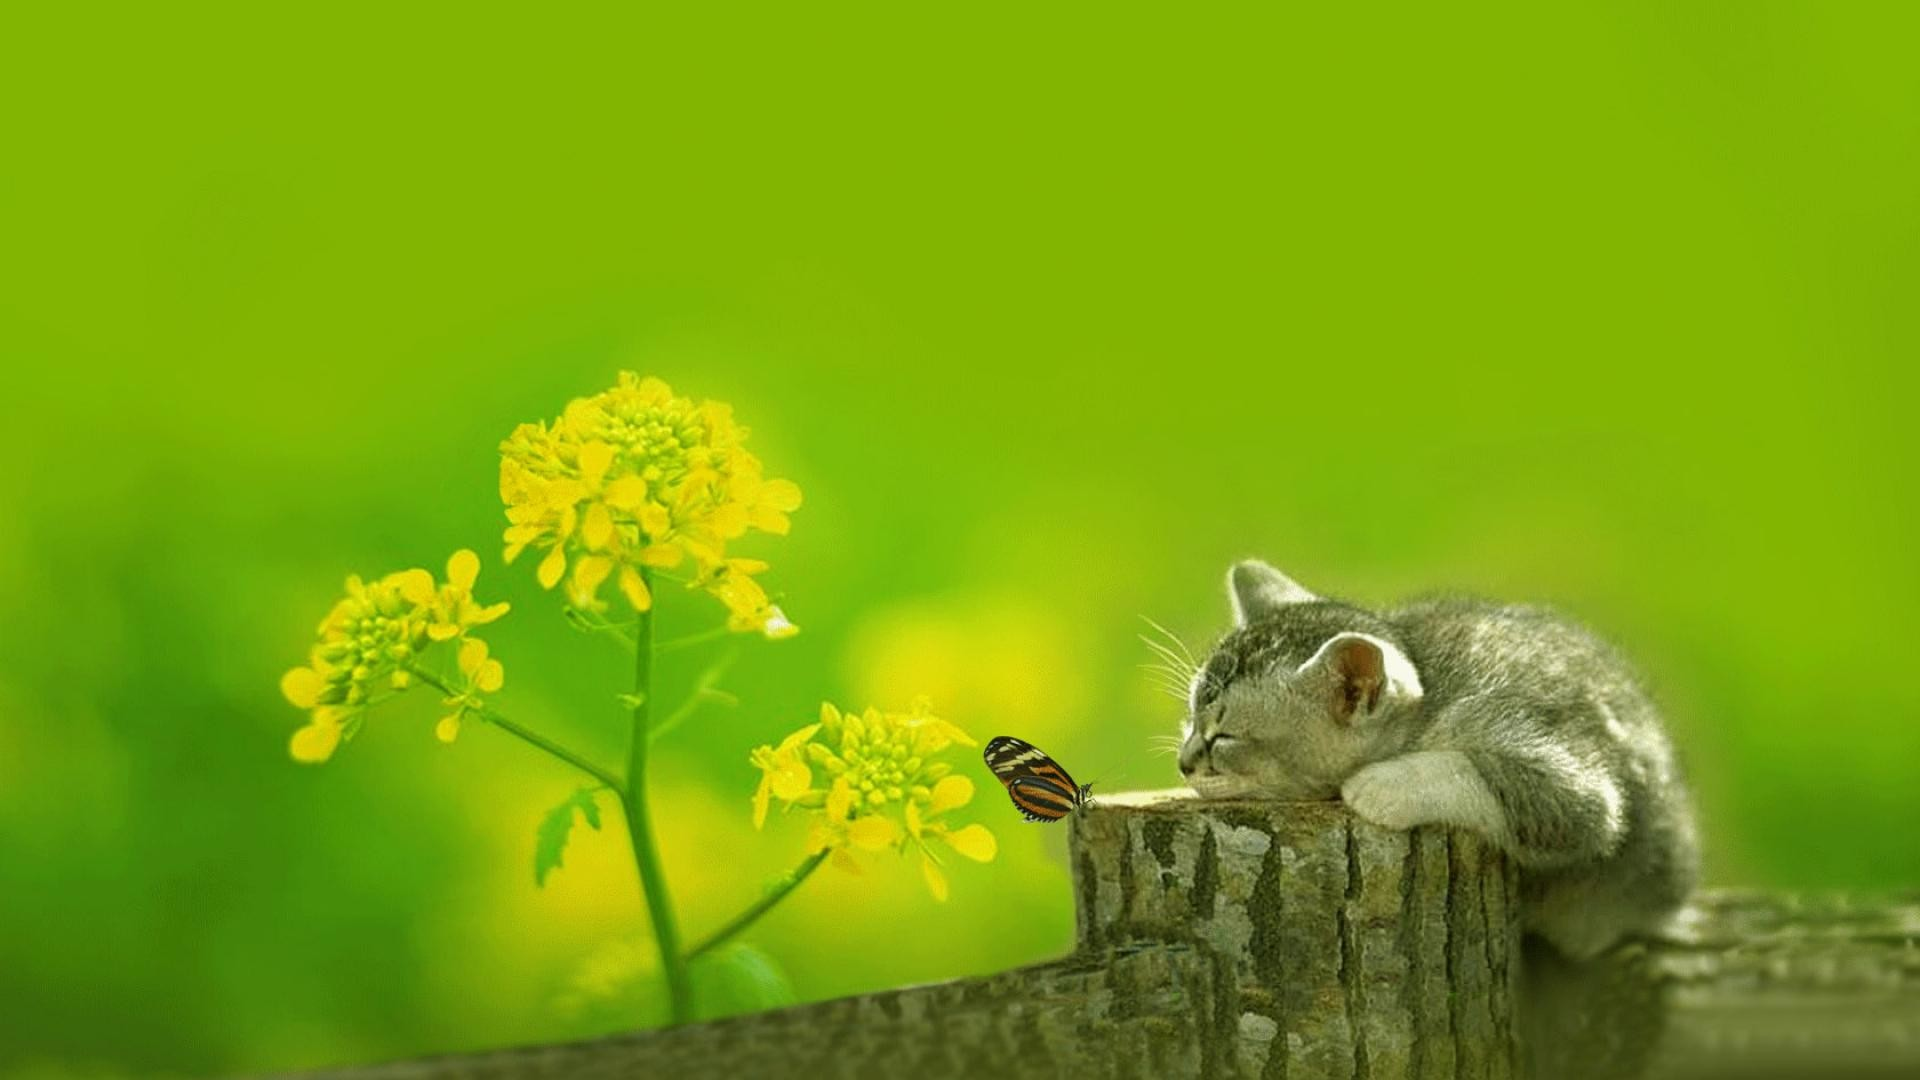 Cute Cat Wallpaper [1920×1080] Need #iPhone #6S #Plus #Wallpaper/ # Background for #IPhone6SPlus? Follow iPhone 6S Plus 3Wallpapers/ # Backgrounds Mu…